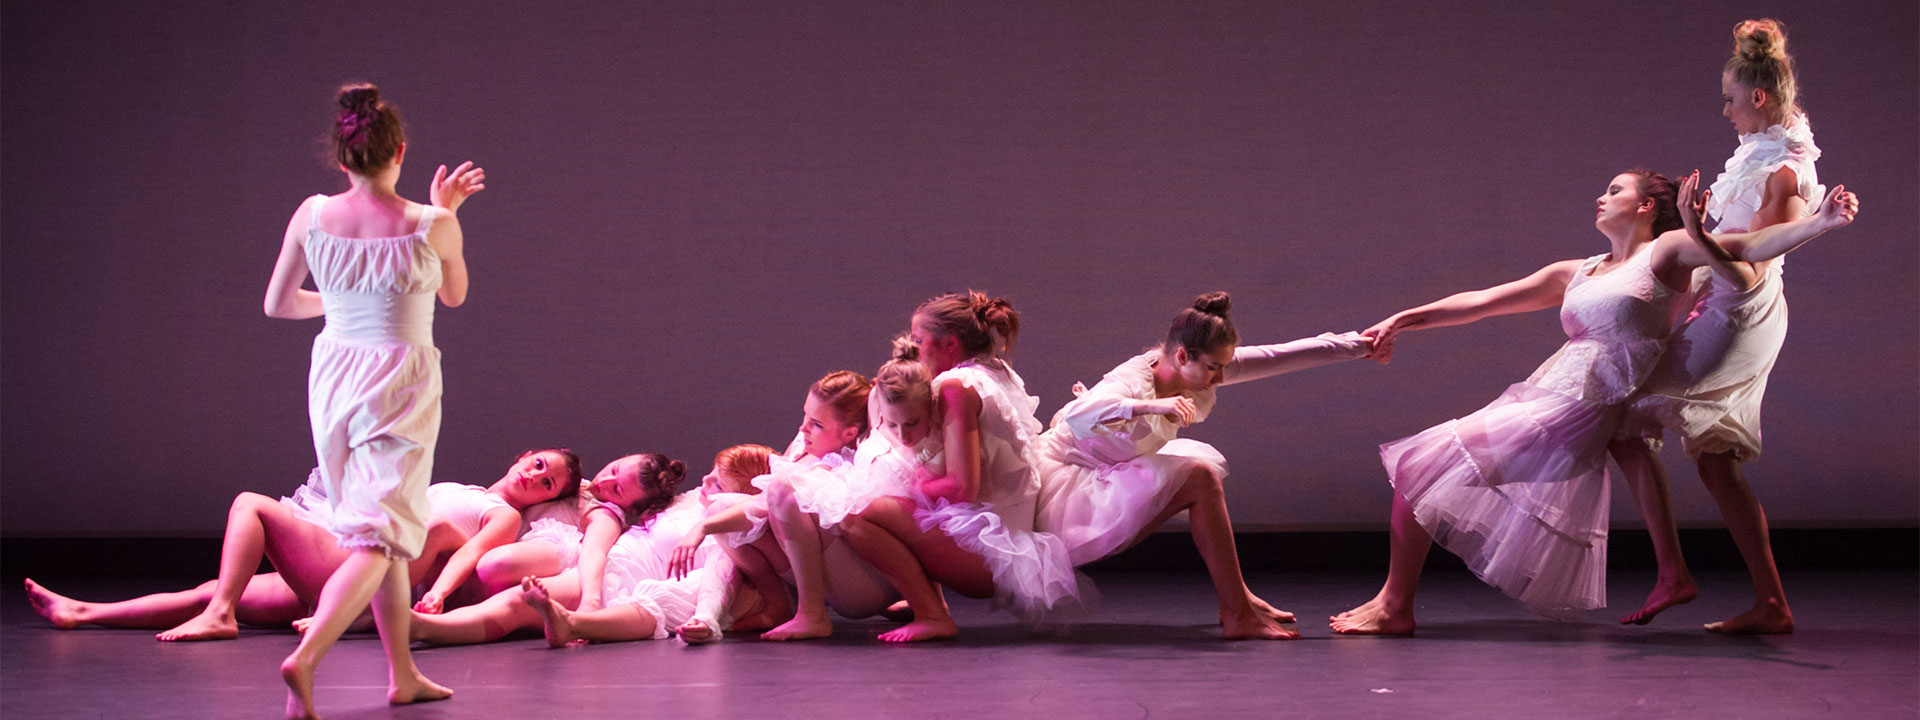 UWM Dance Department